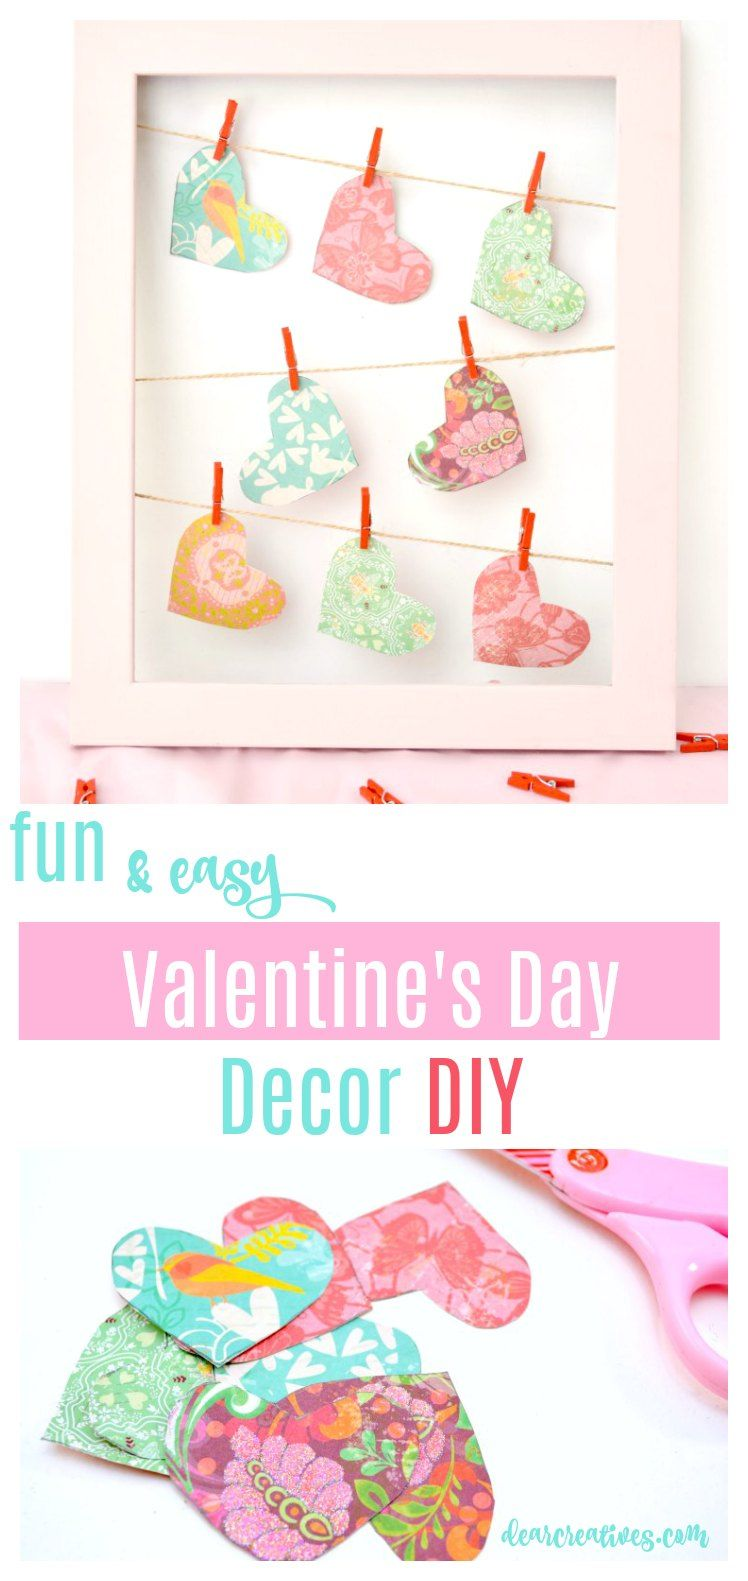 Fun, And Easy Valentineu0027s Day Home Decor DIY See How To Make This For Your